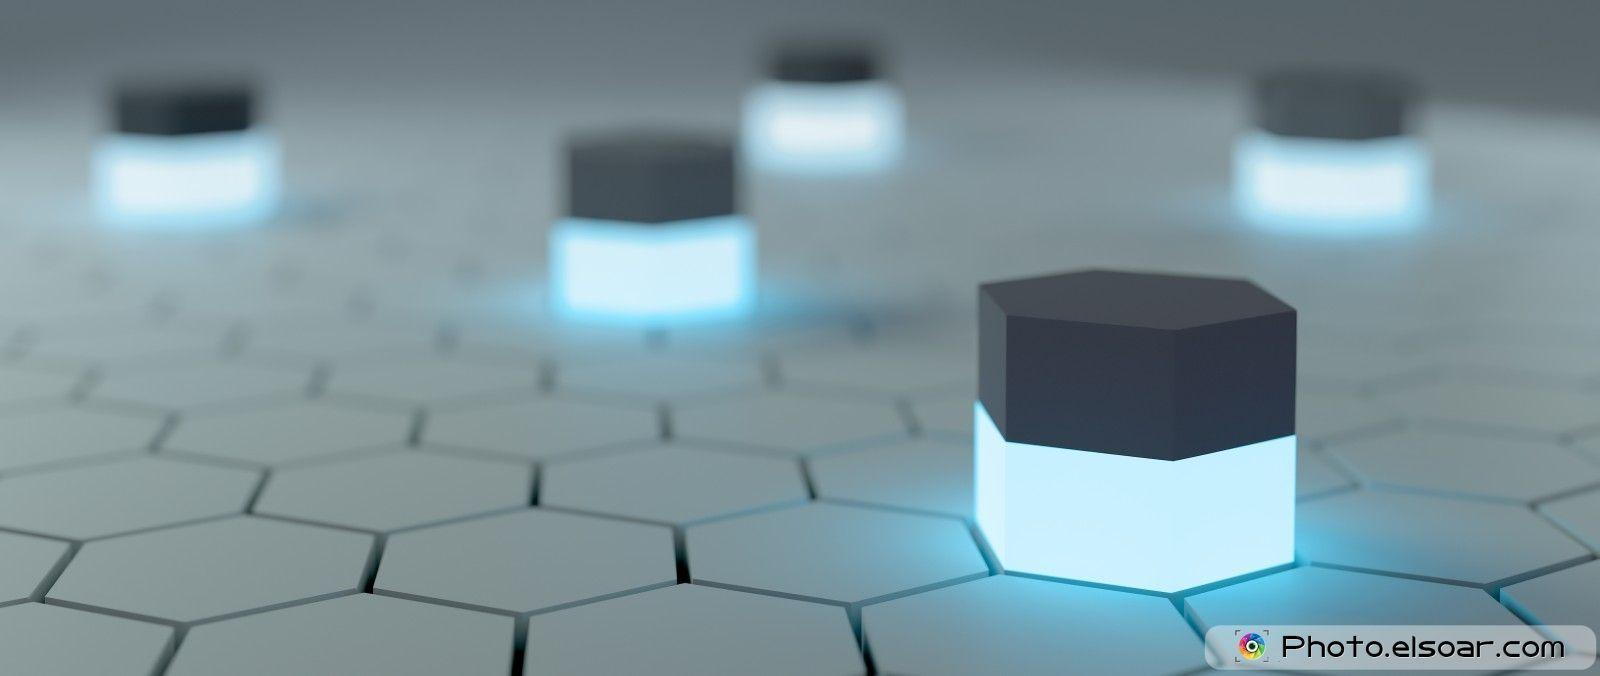 3d desktop backgrounds tech - photo #34